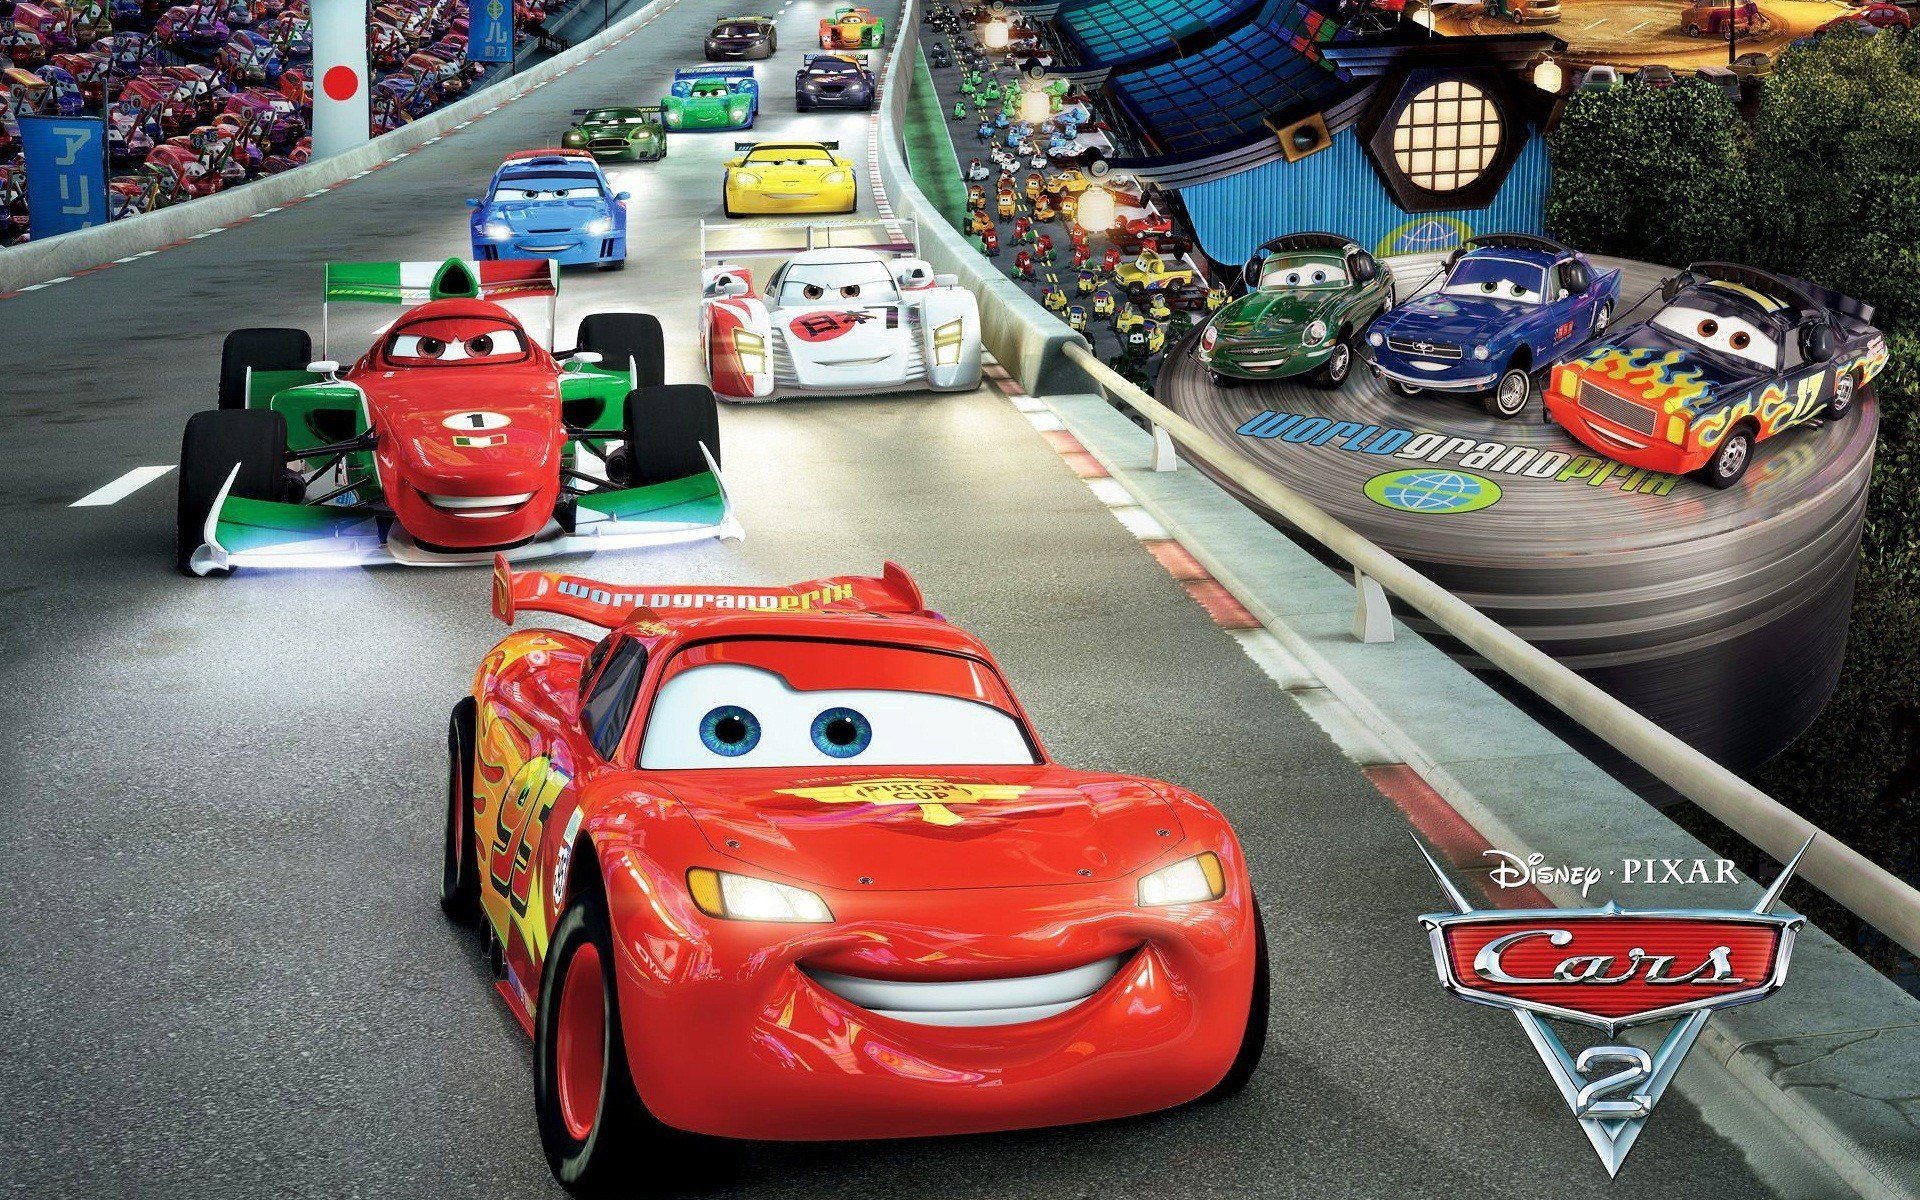 Latest Cars 2 Race Wallpapers Hd Wallpapers Id 9744 Free Download Original 1024 x 768